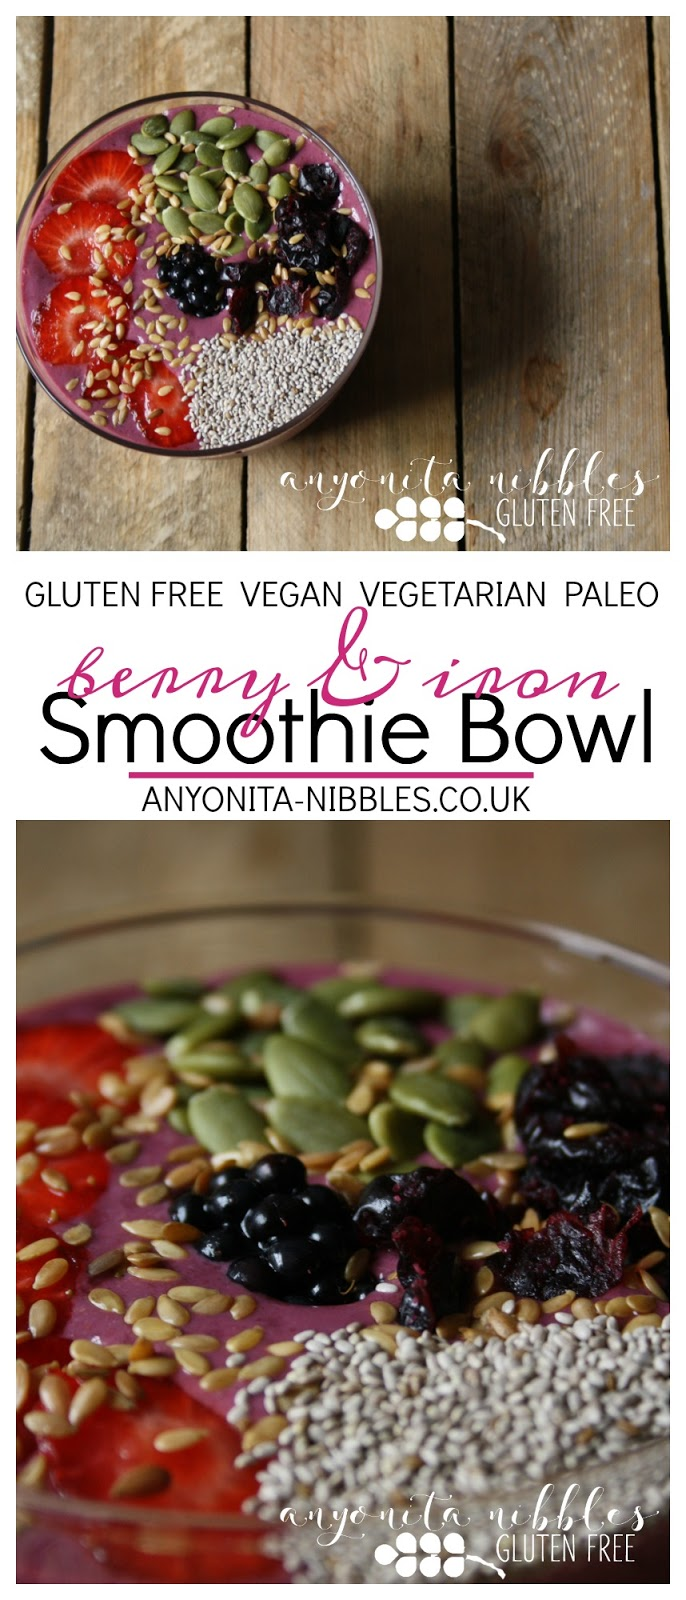 Gluten Free, Vegan, Vegetaran, Paleo Berry & Iron Smoothie Bowl | Anyonita Nibbles